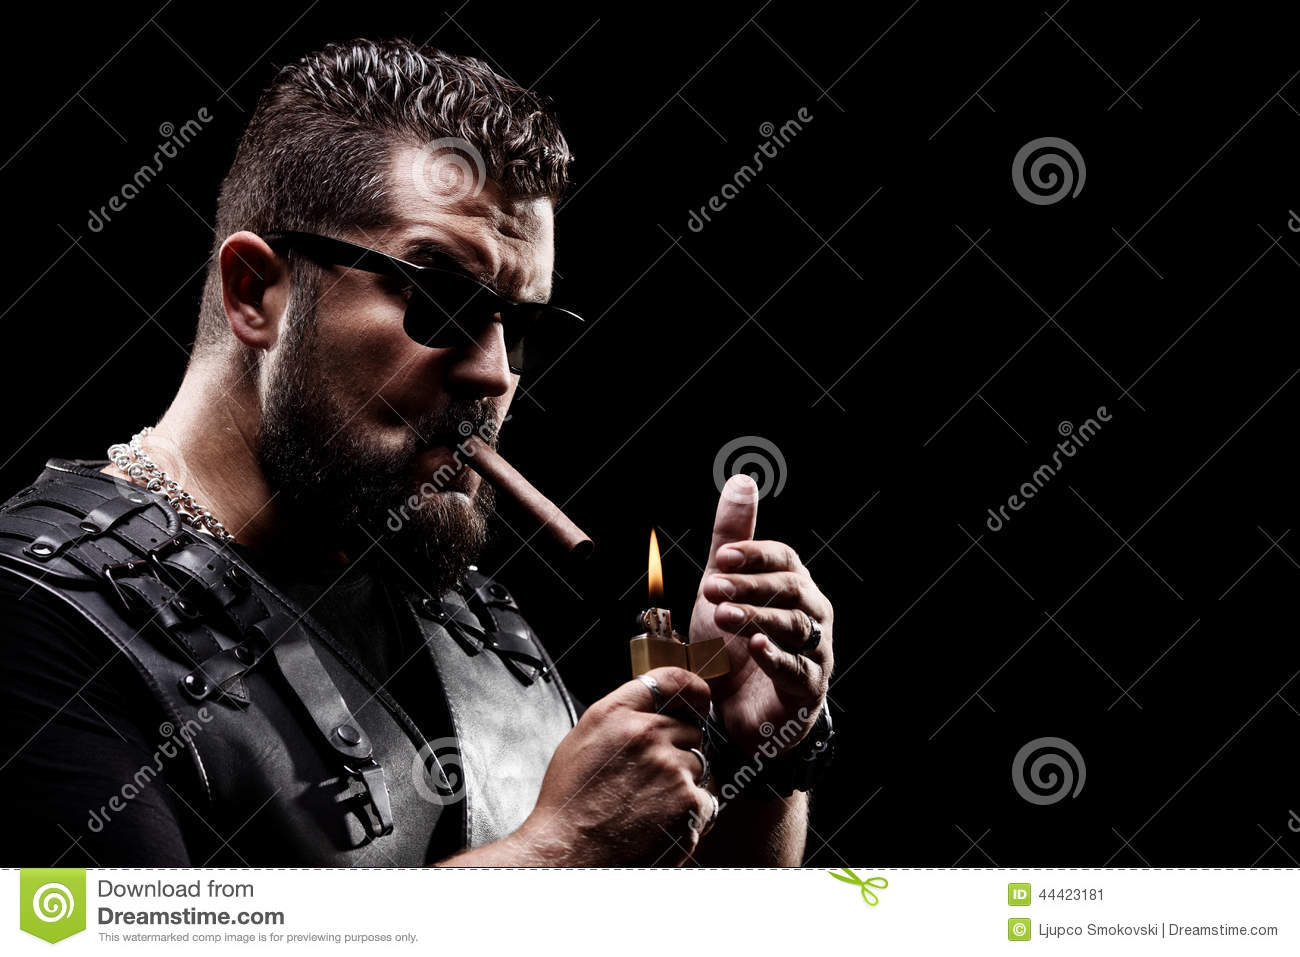 Badass biker lighting up a cigarette